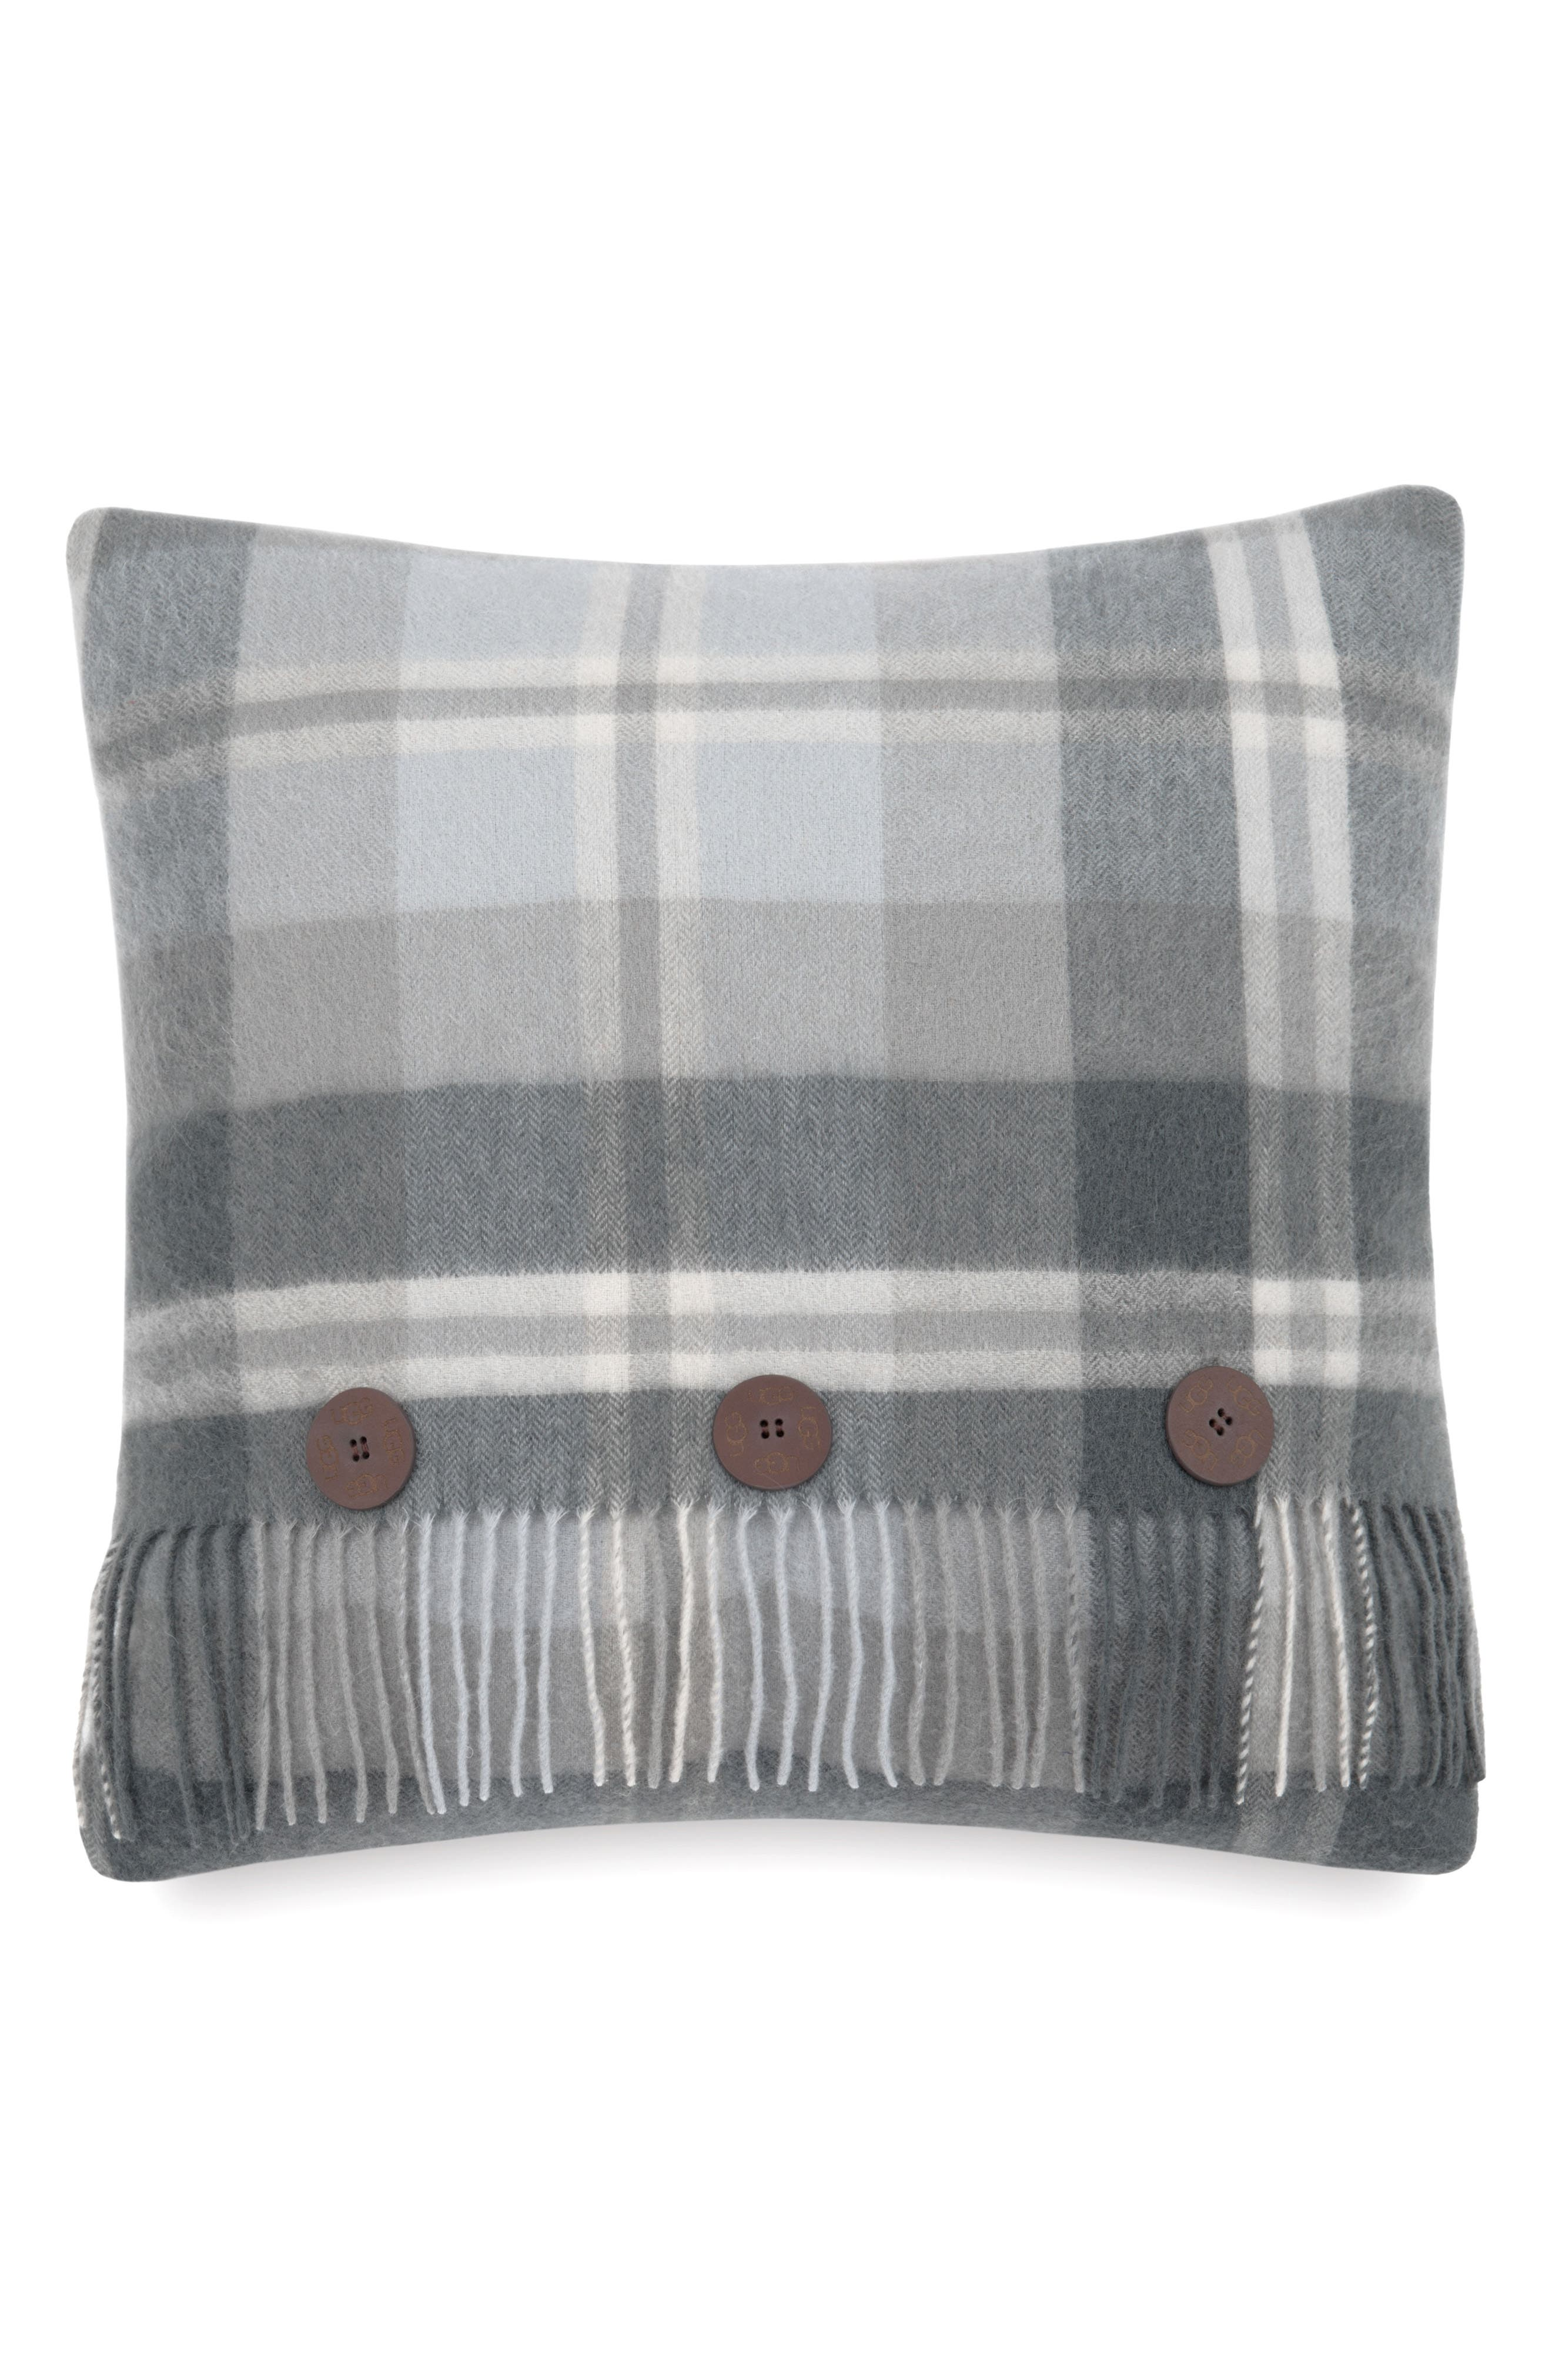 Glacier Plaid Pillow,                             Main thumbnail 1, color,                             Grey Multi